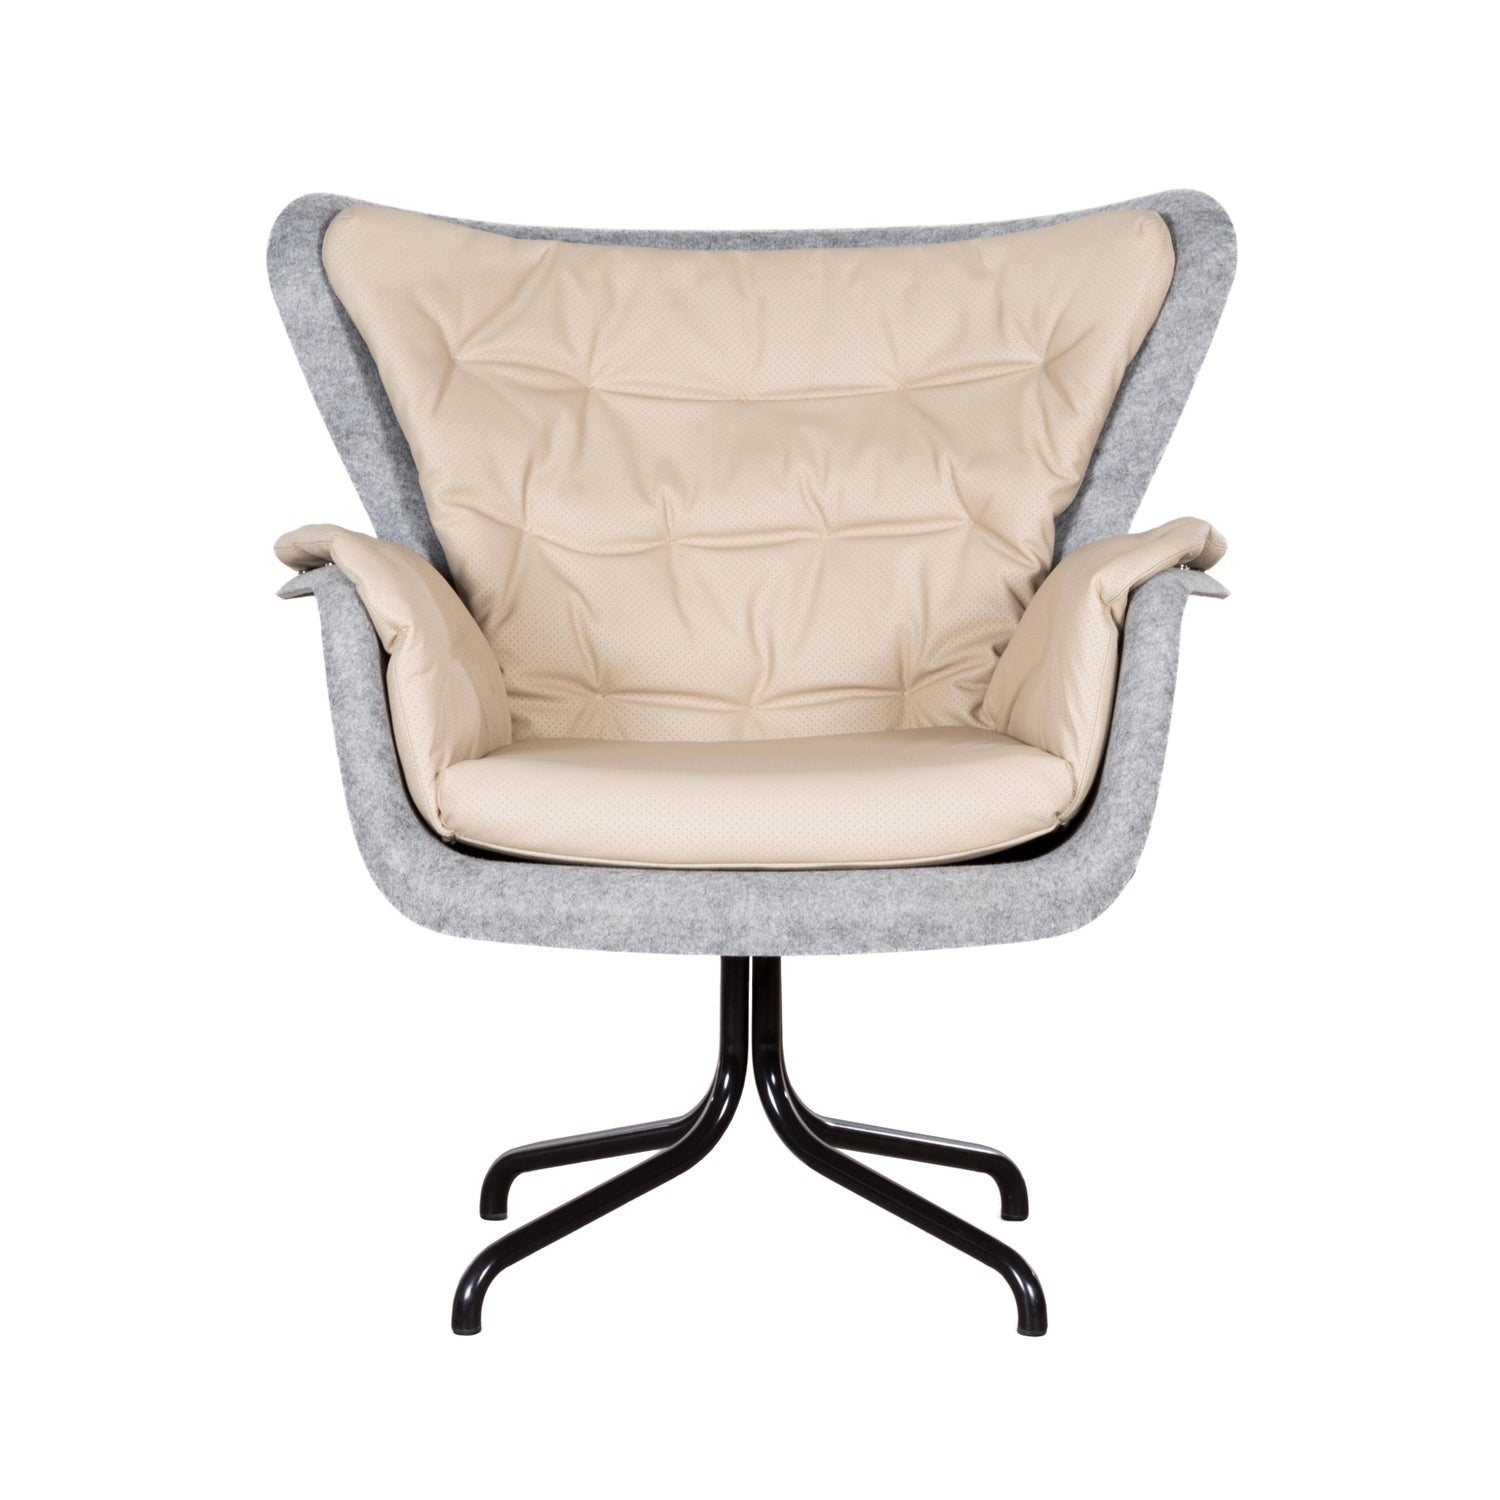 Egg Chair Bruin Leer.Pet Eco Friendly Armchair In Grey And Cream Leather Netherlands